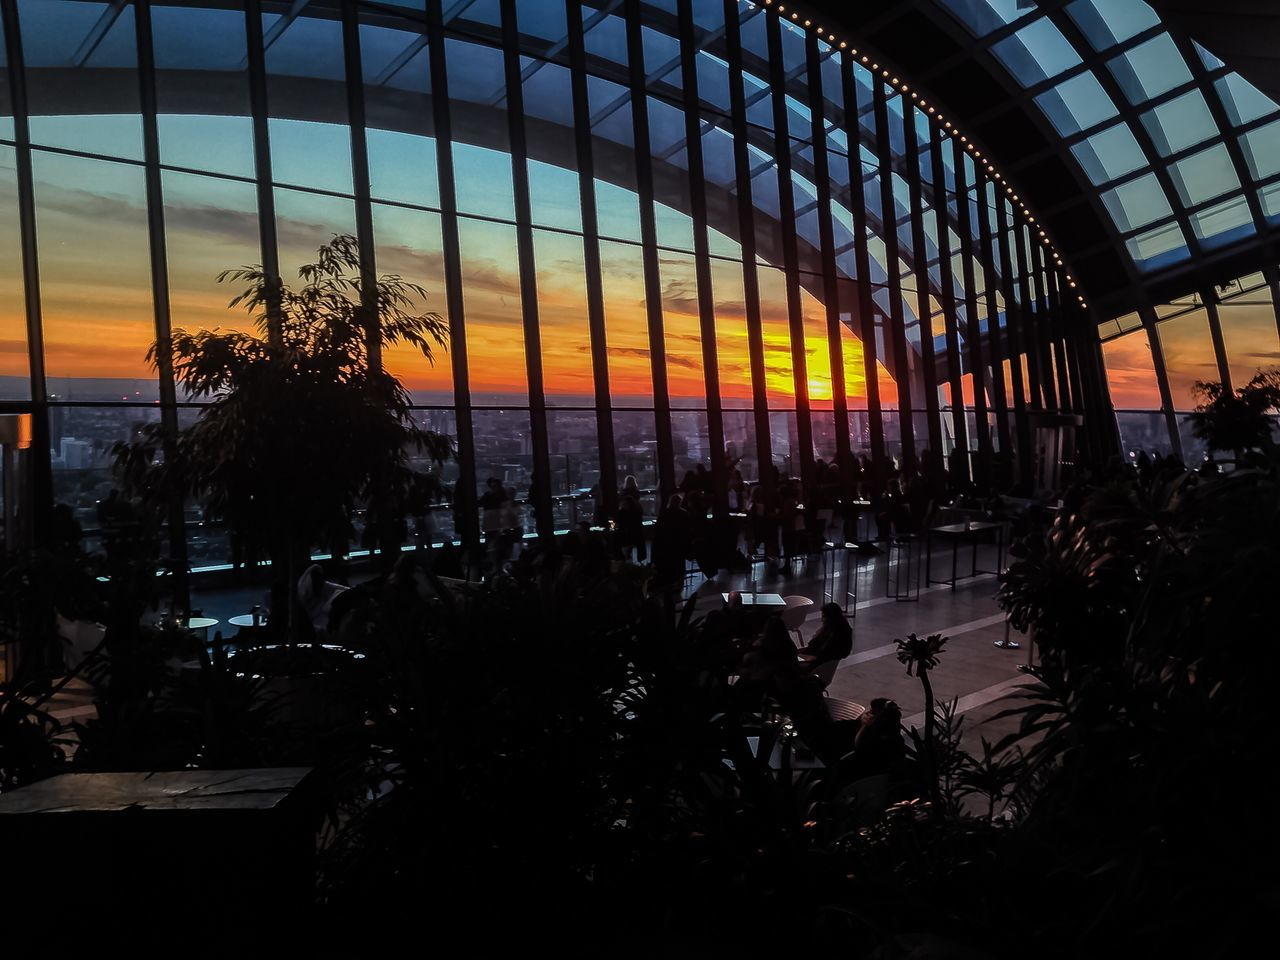 sunset, silhouette, no people, sky, architecture, built structure, nature, indoors, tree, plant, beauty in nature, water, city, day